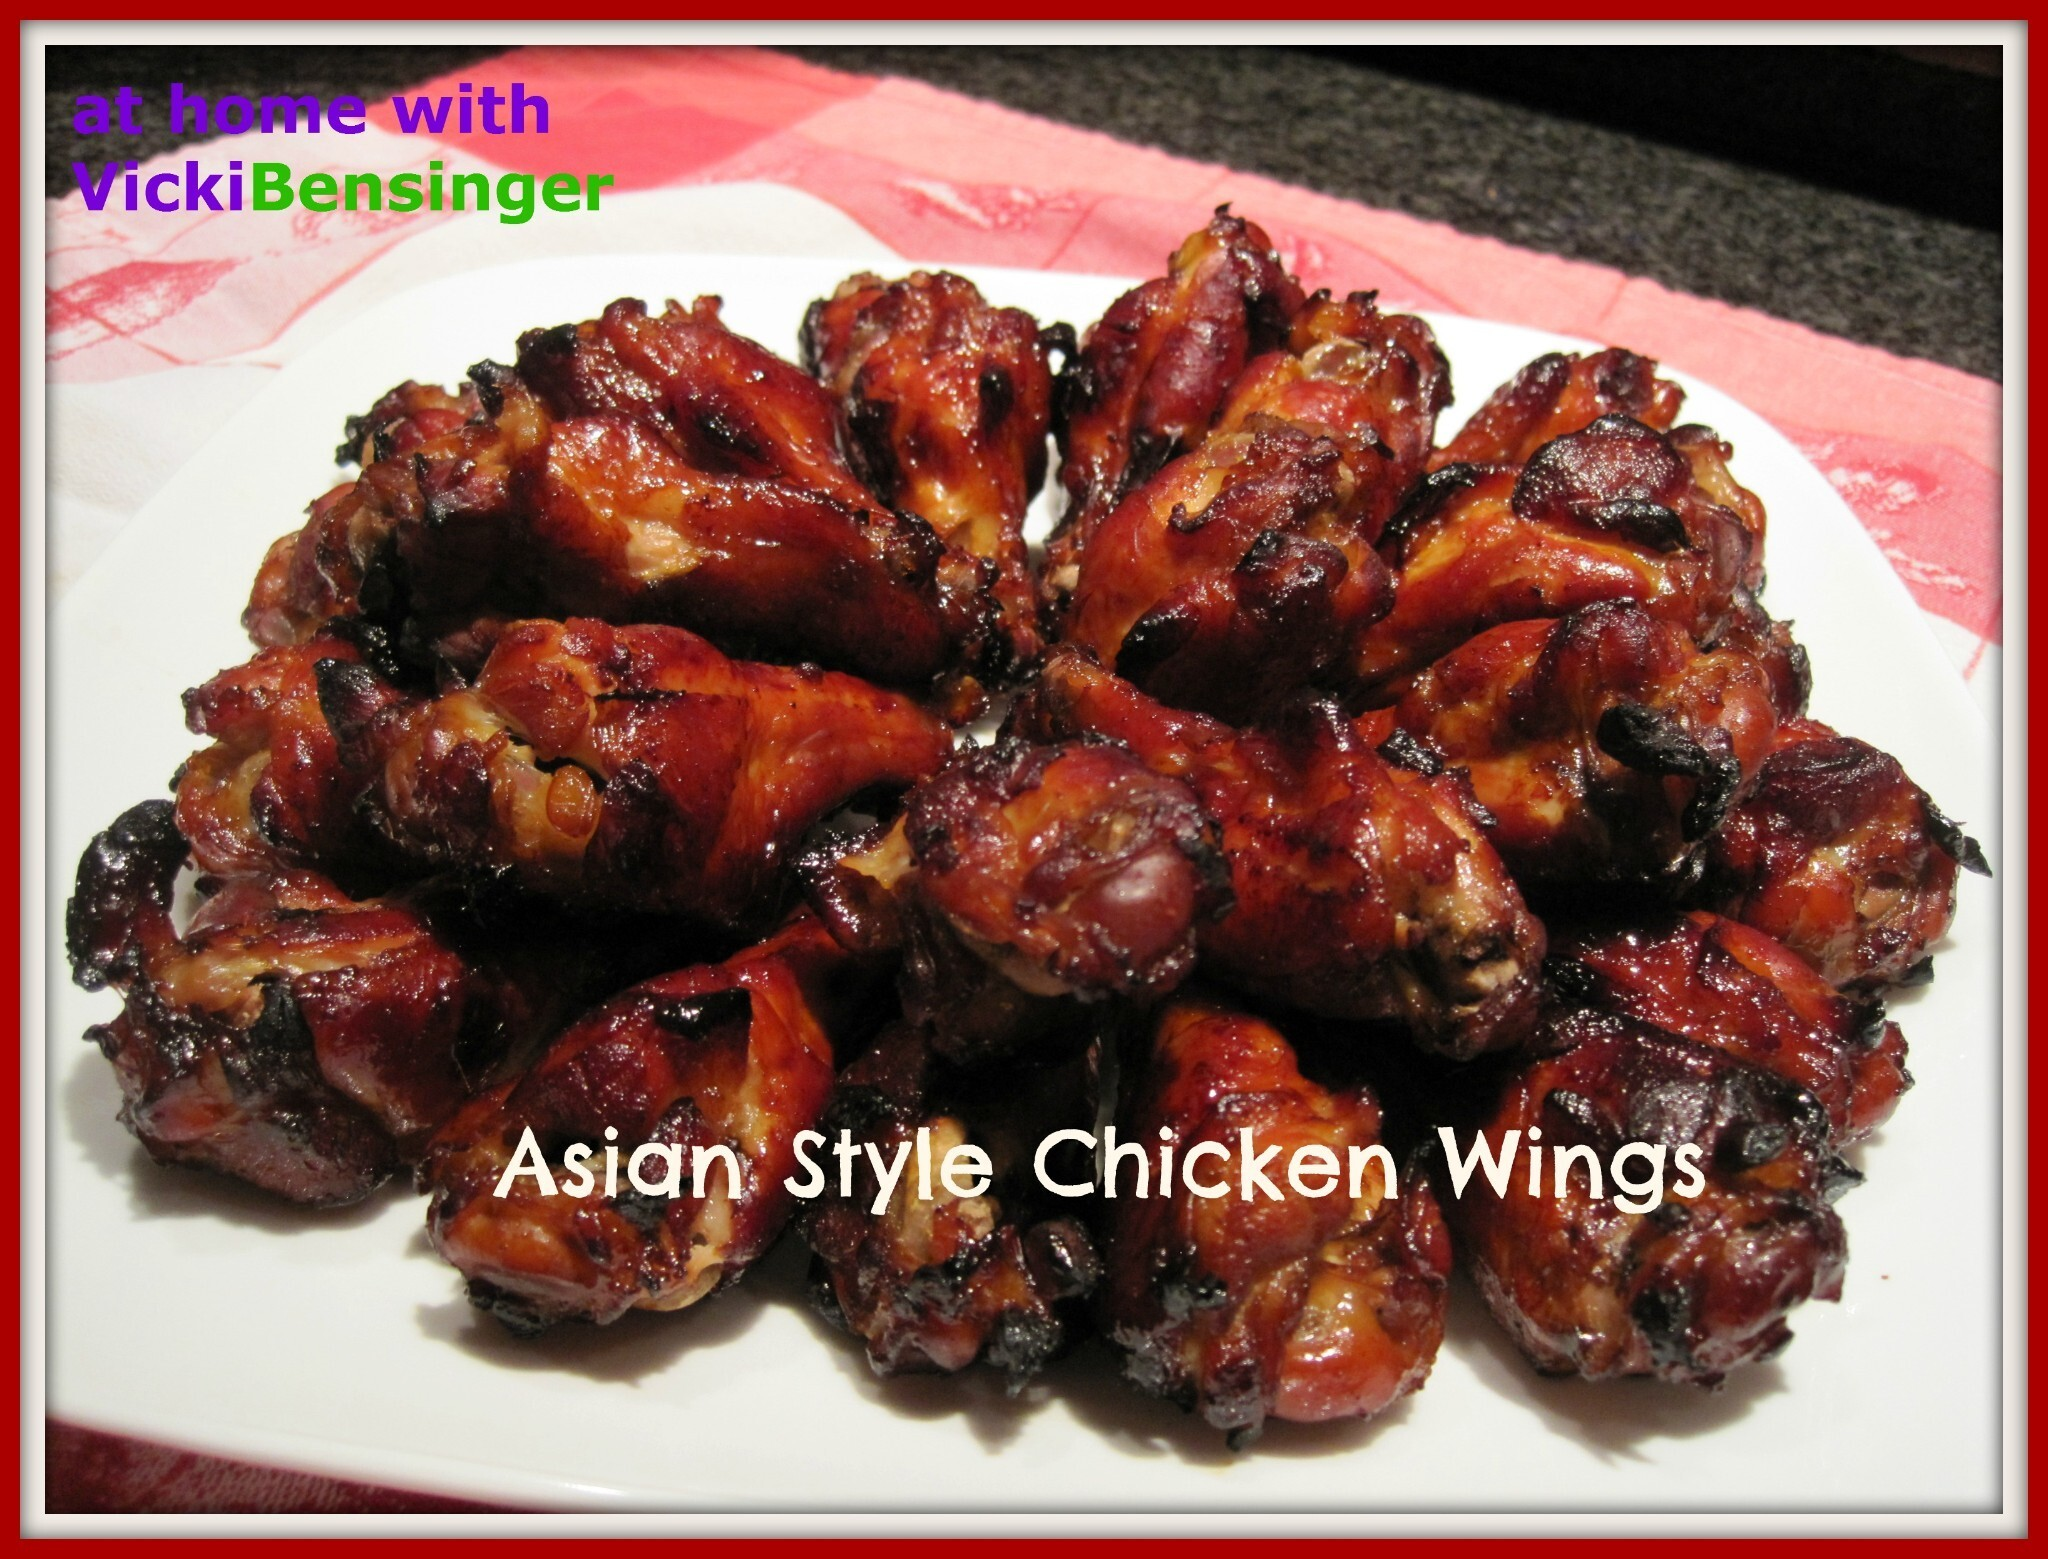 Super Bowl Asian Style Chicken Wings!